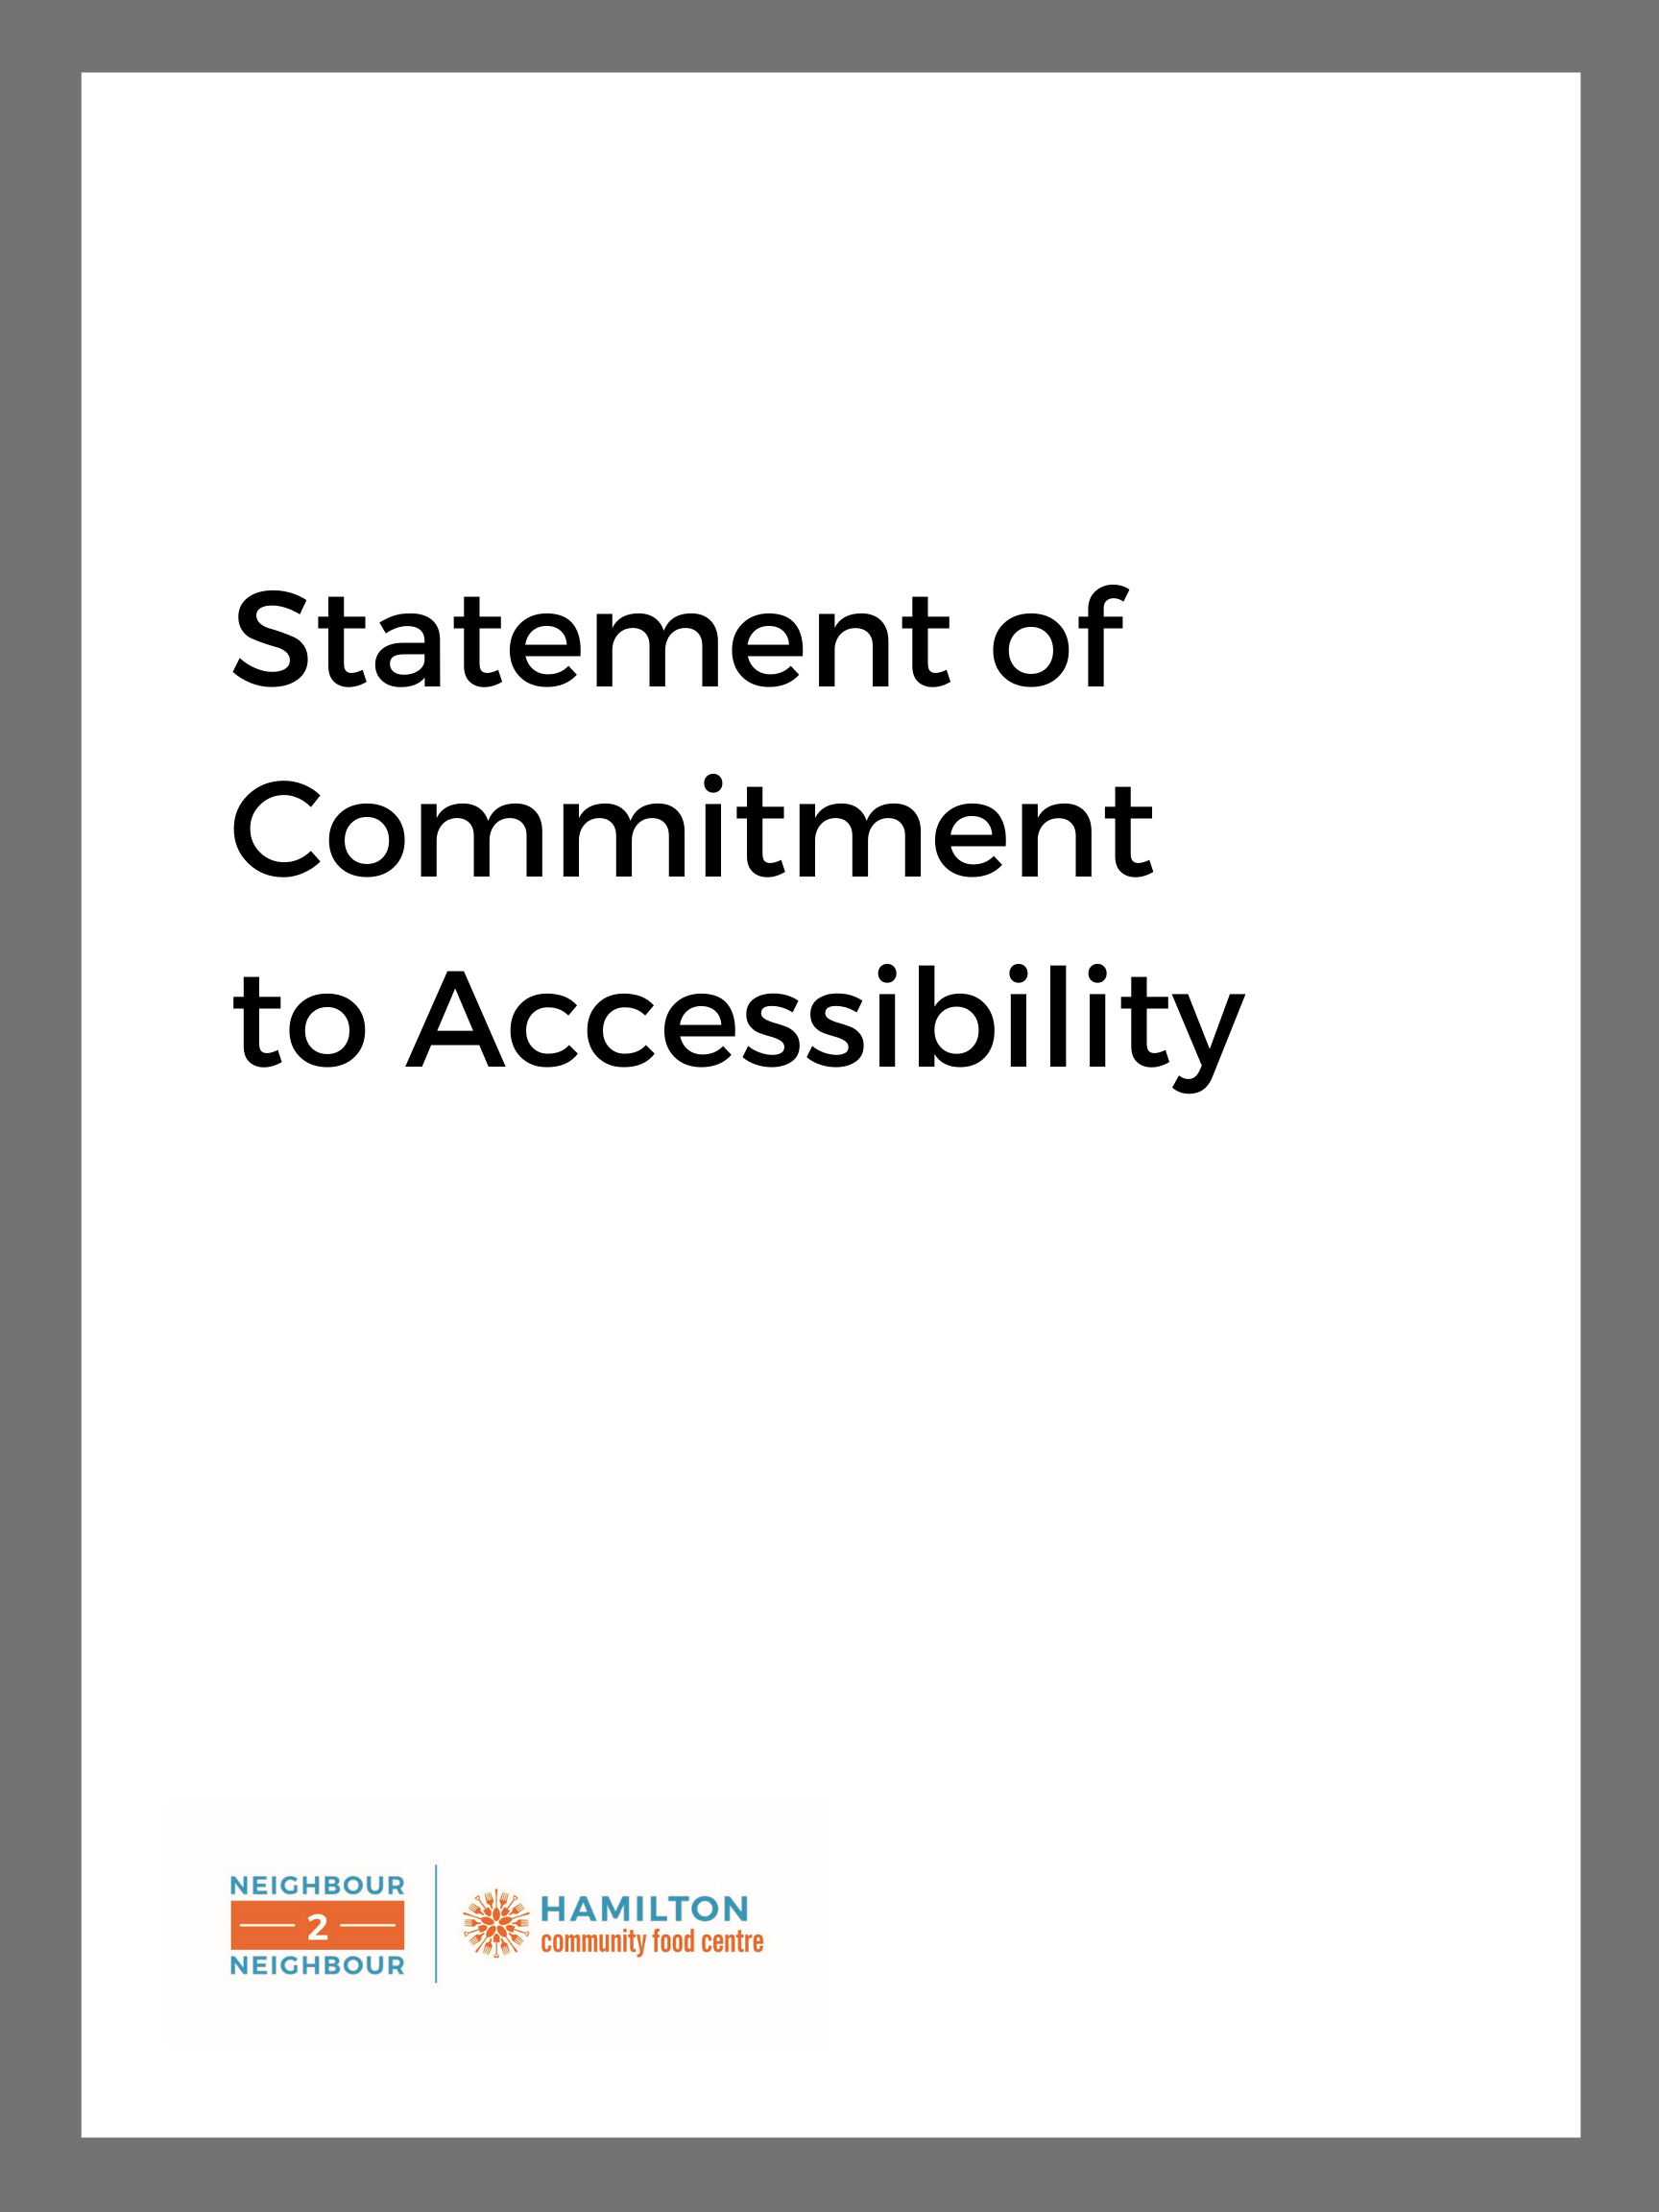 document image: statement of Commitment to Accessibility